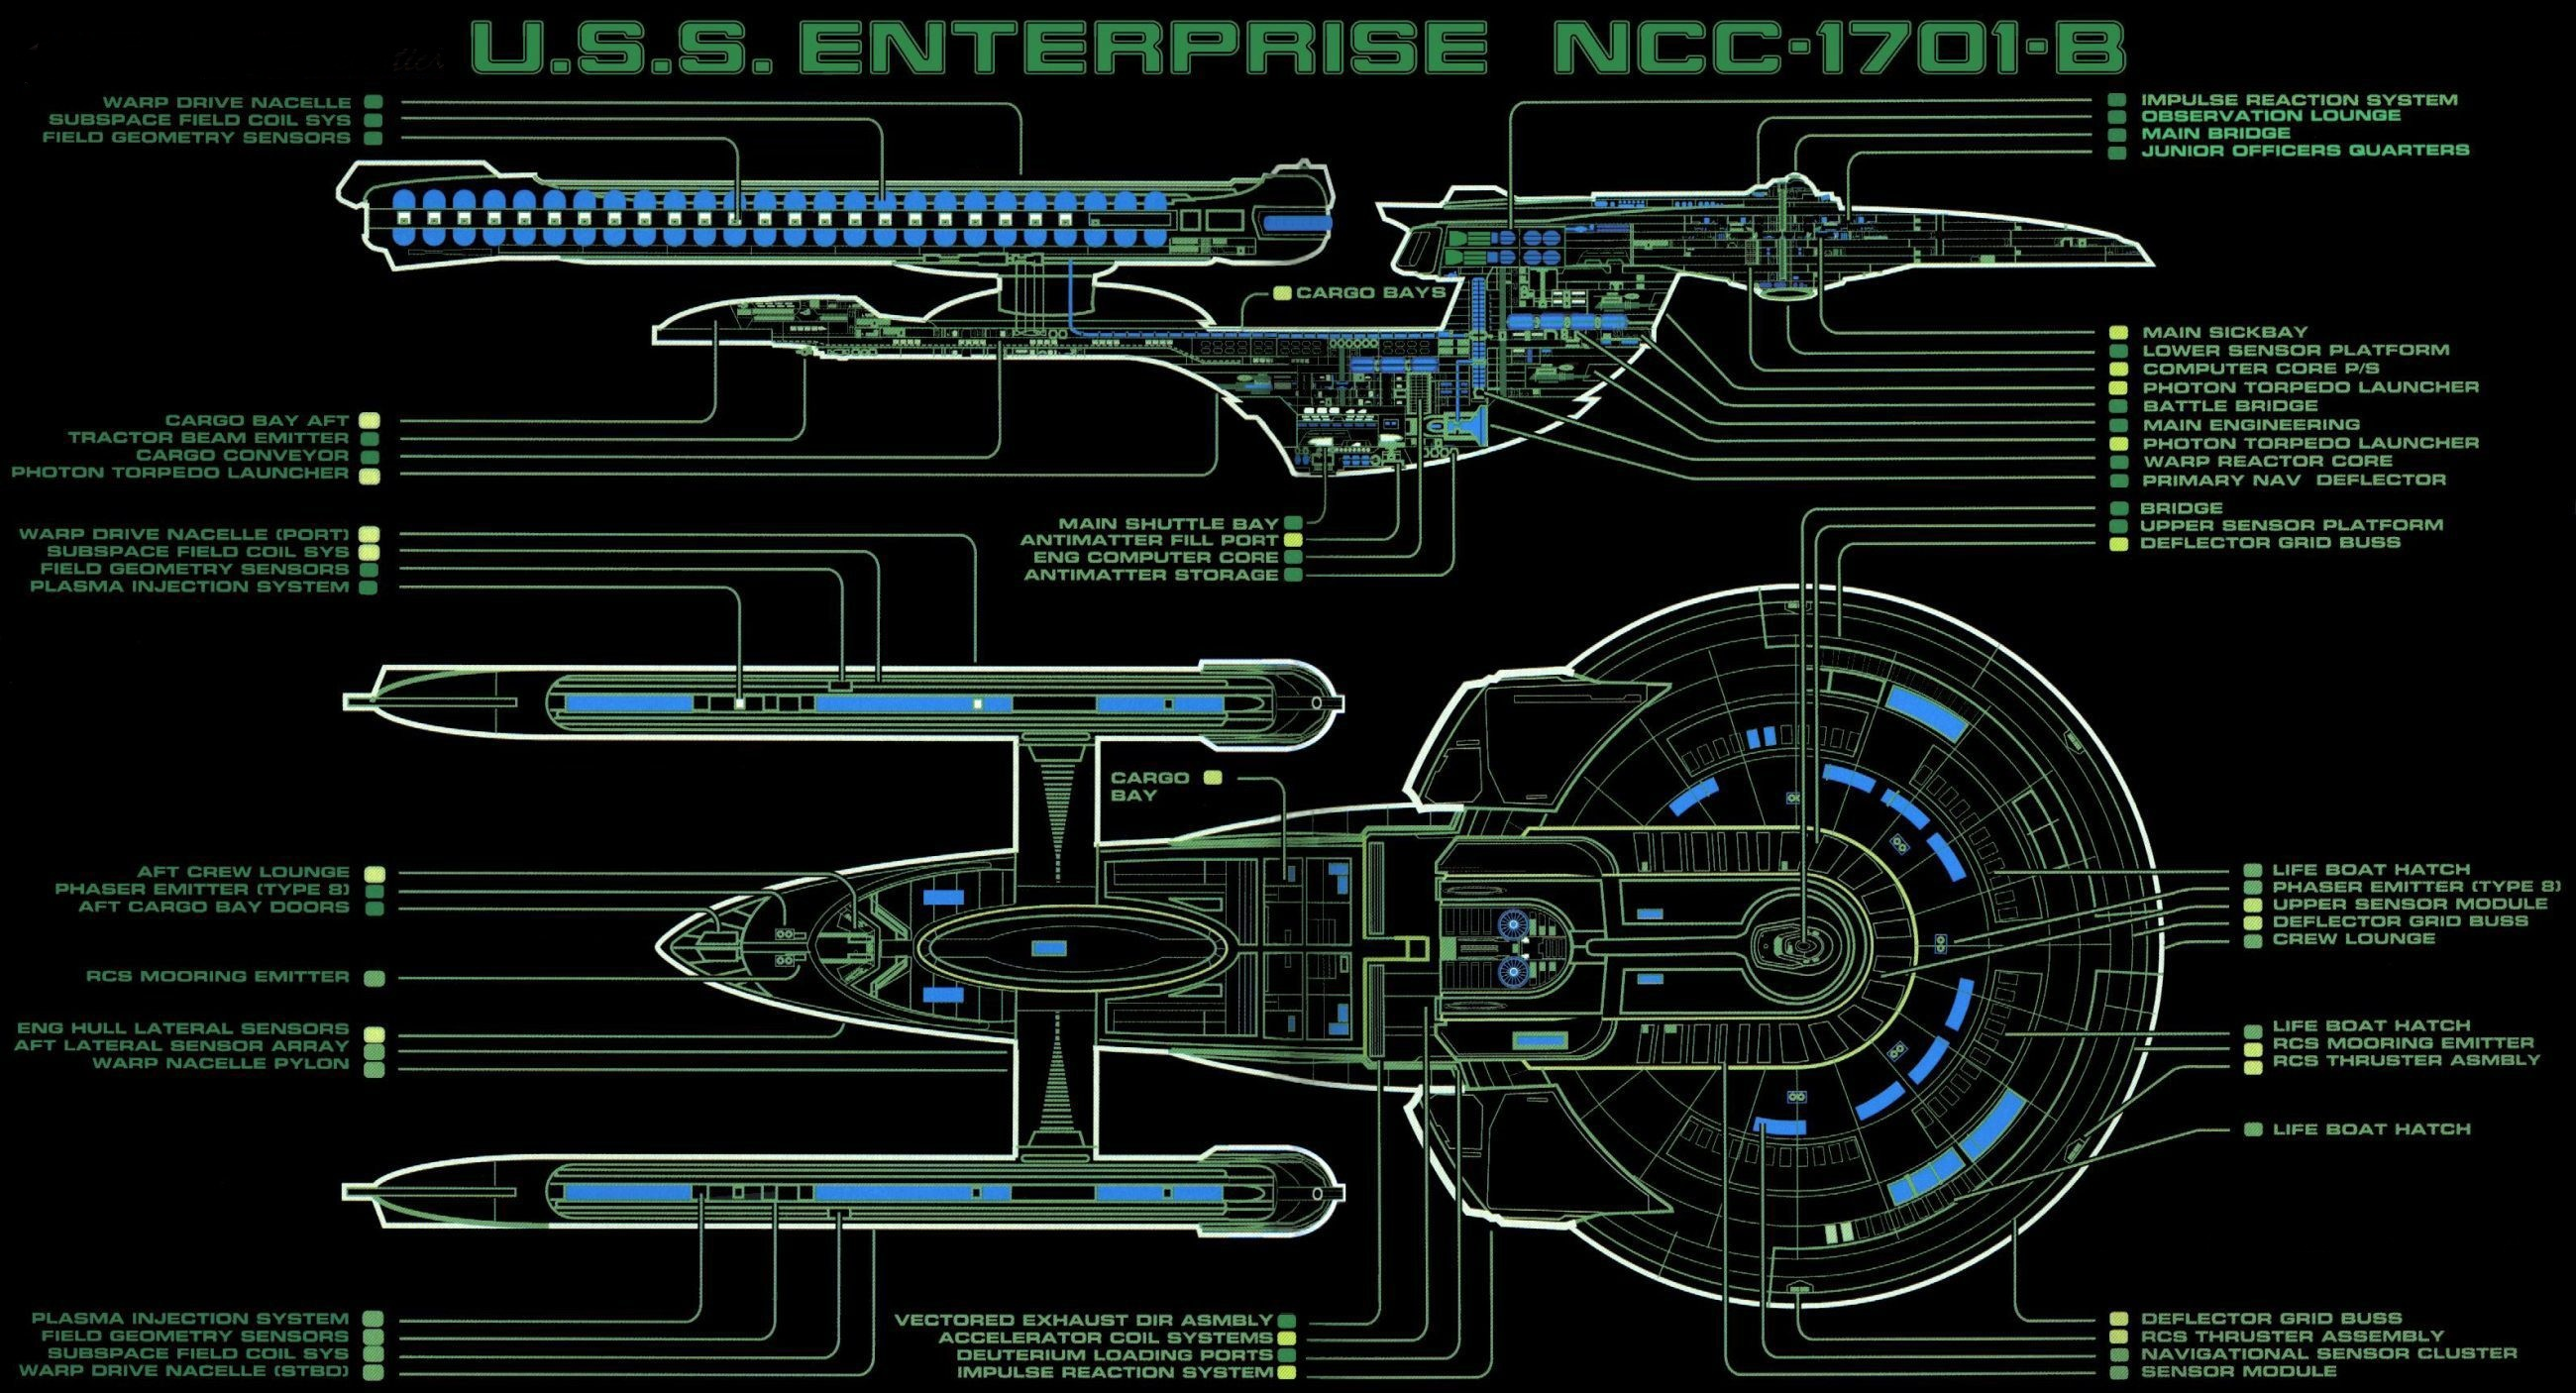 FRIQUIS SPACE (CUADERNO DE VITACORAS) U-s-s_enterprise-b_onscreen_cross_section